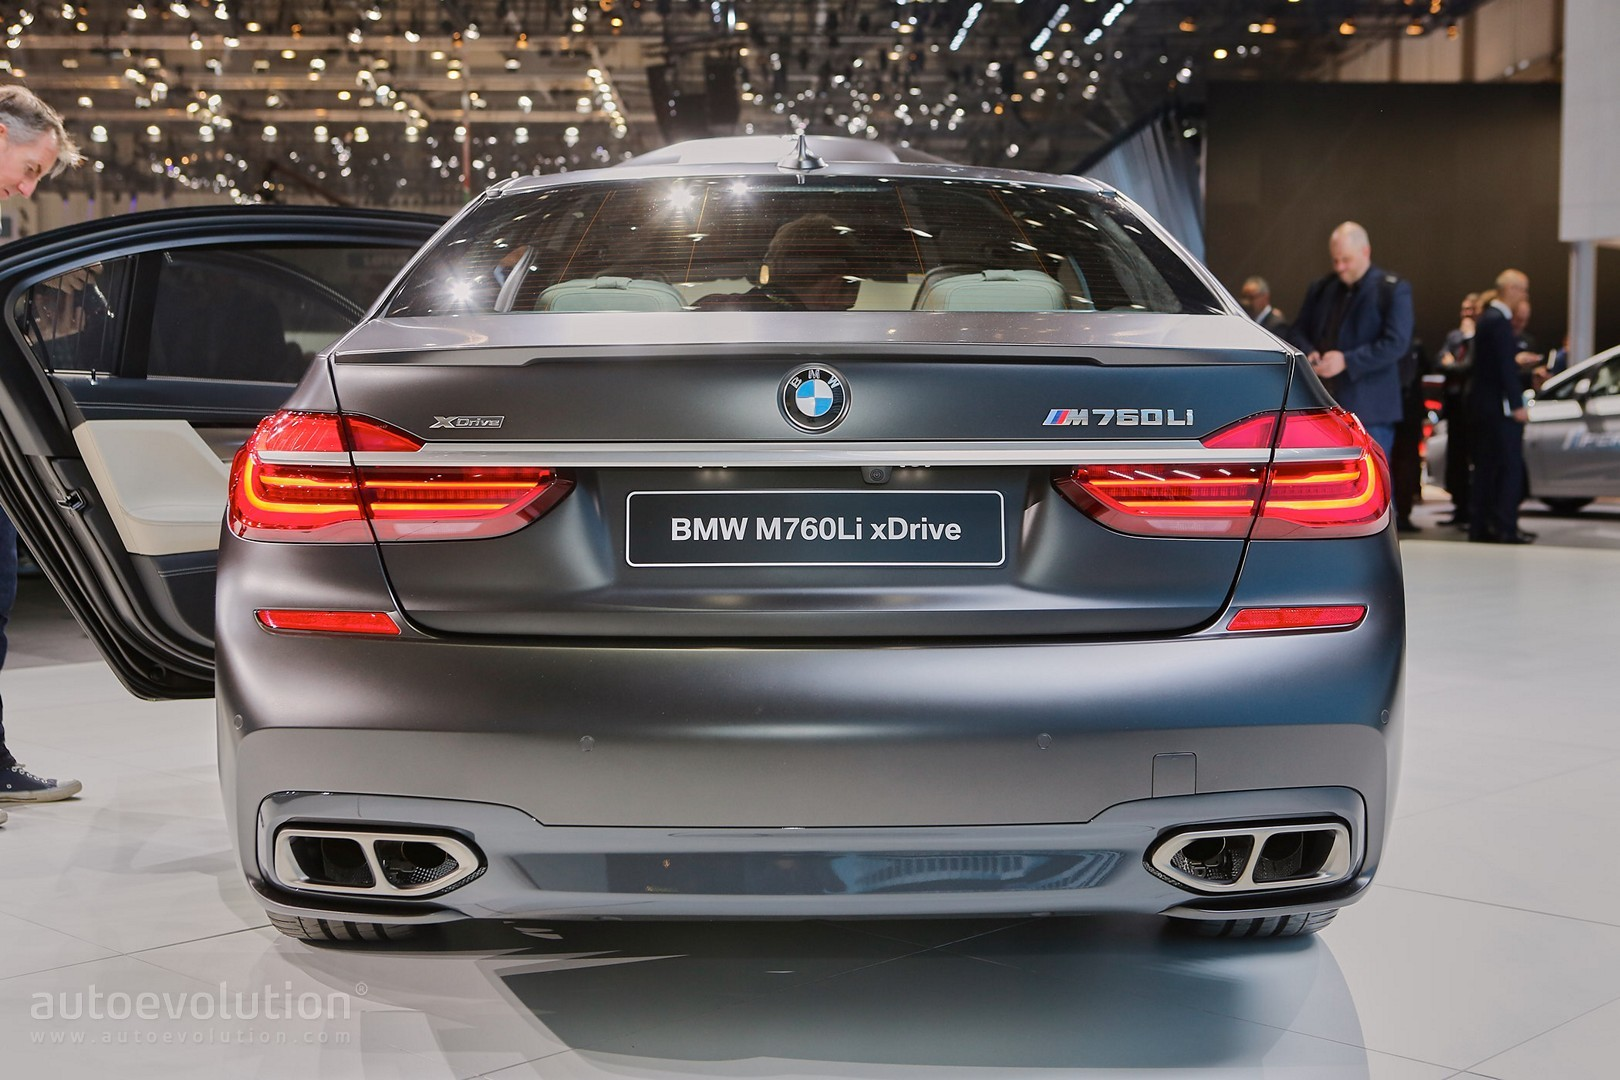 2017 Bmw M760li Xdrive Gets 10 Extra Hp As It Chases The